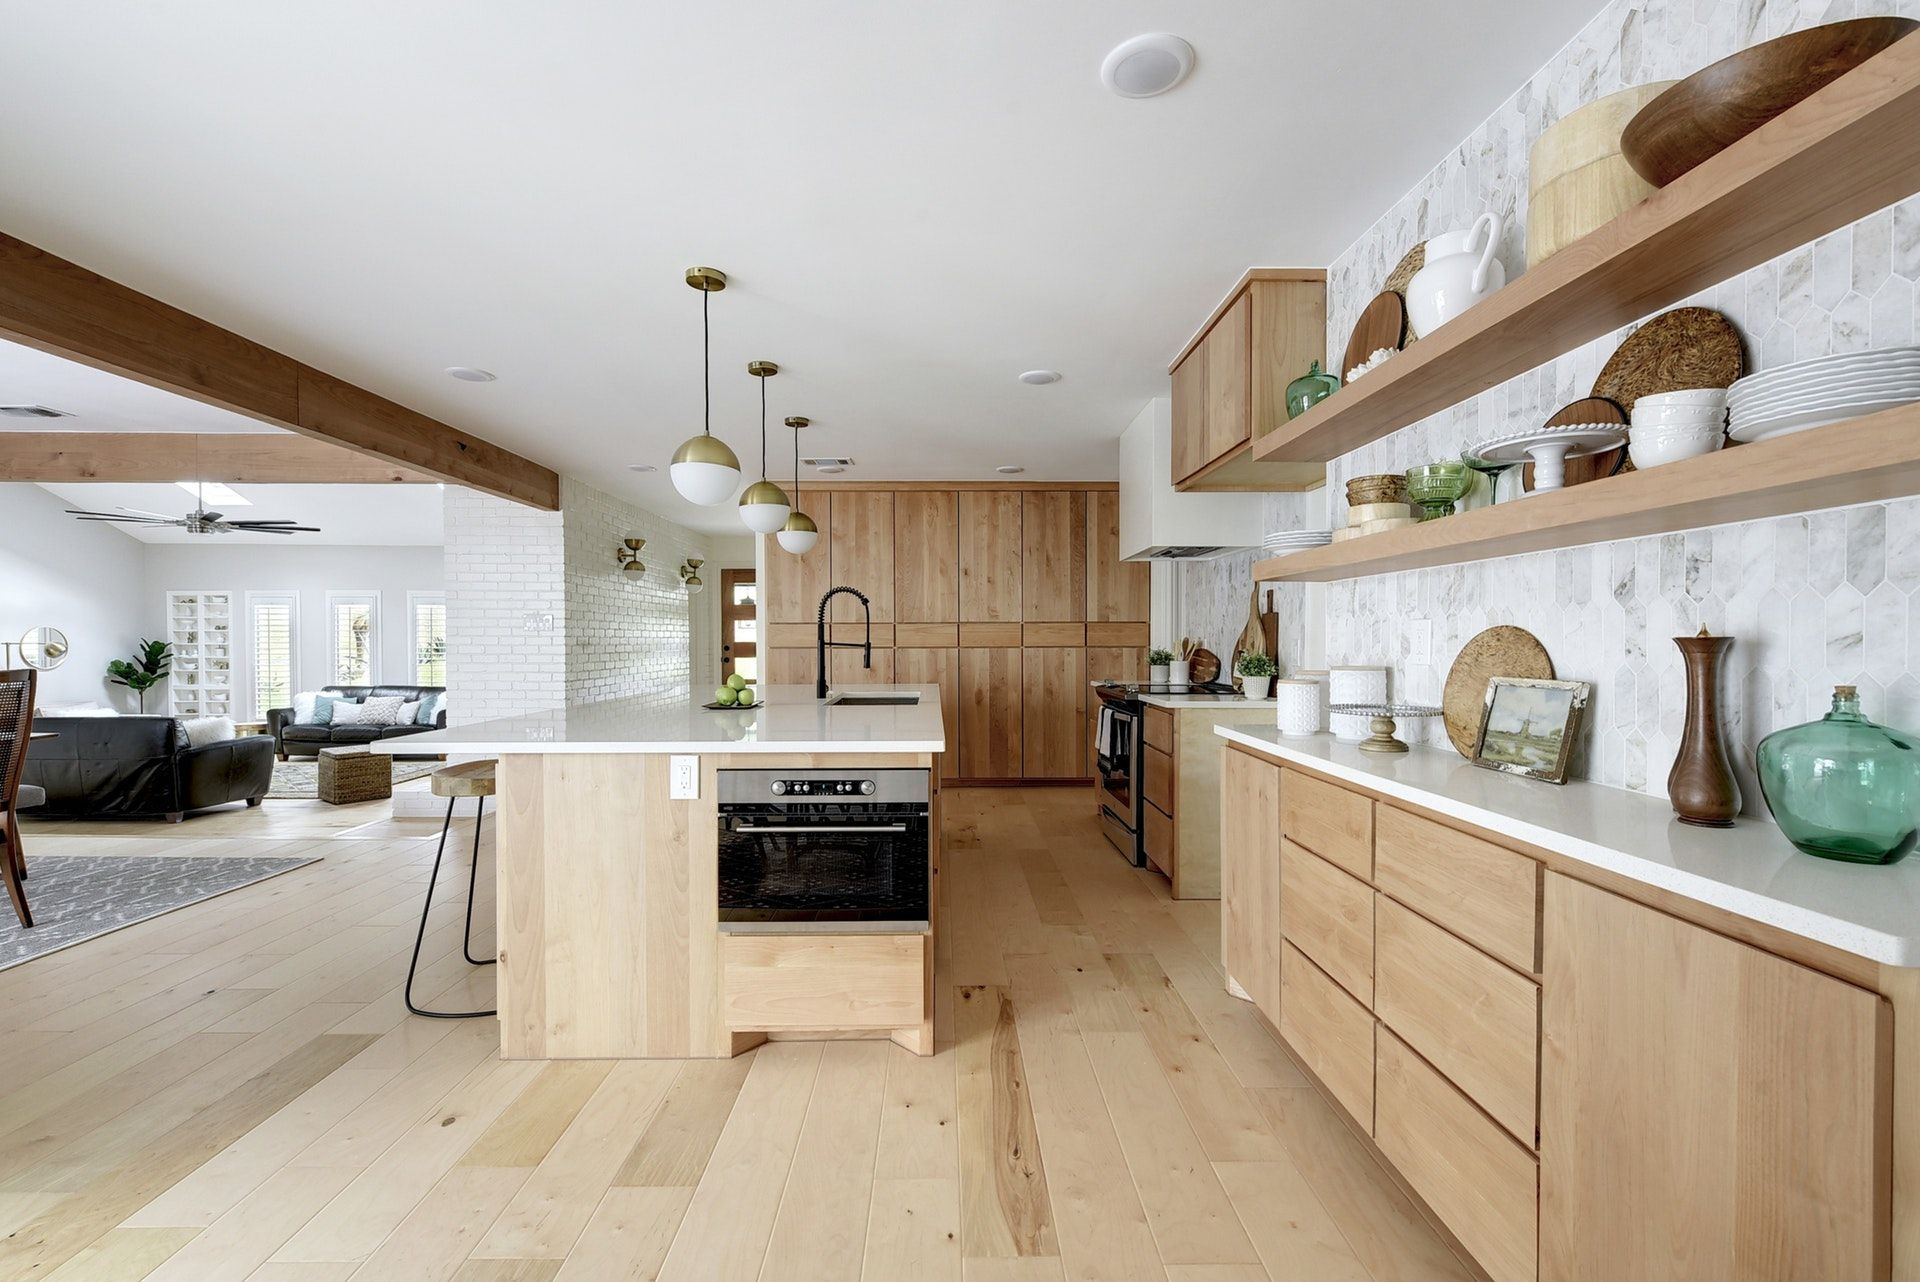 Open Kitchen With Flat Front Natural Alder Wood Cabinets Light Wood Floors Globe Pen Natural Wood Kitchen Cabinets Wood Kitchen Cabinets Natural Wood Kitchen